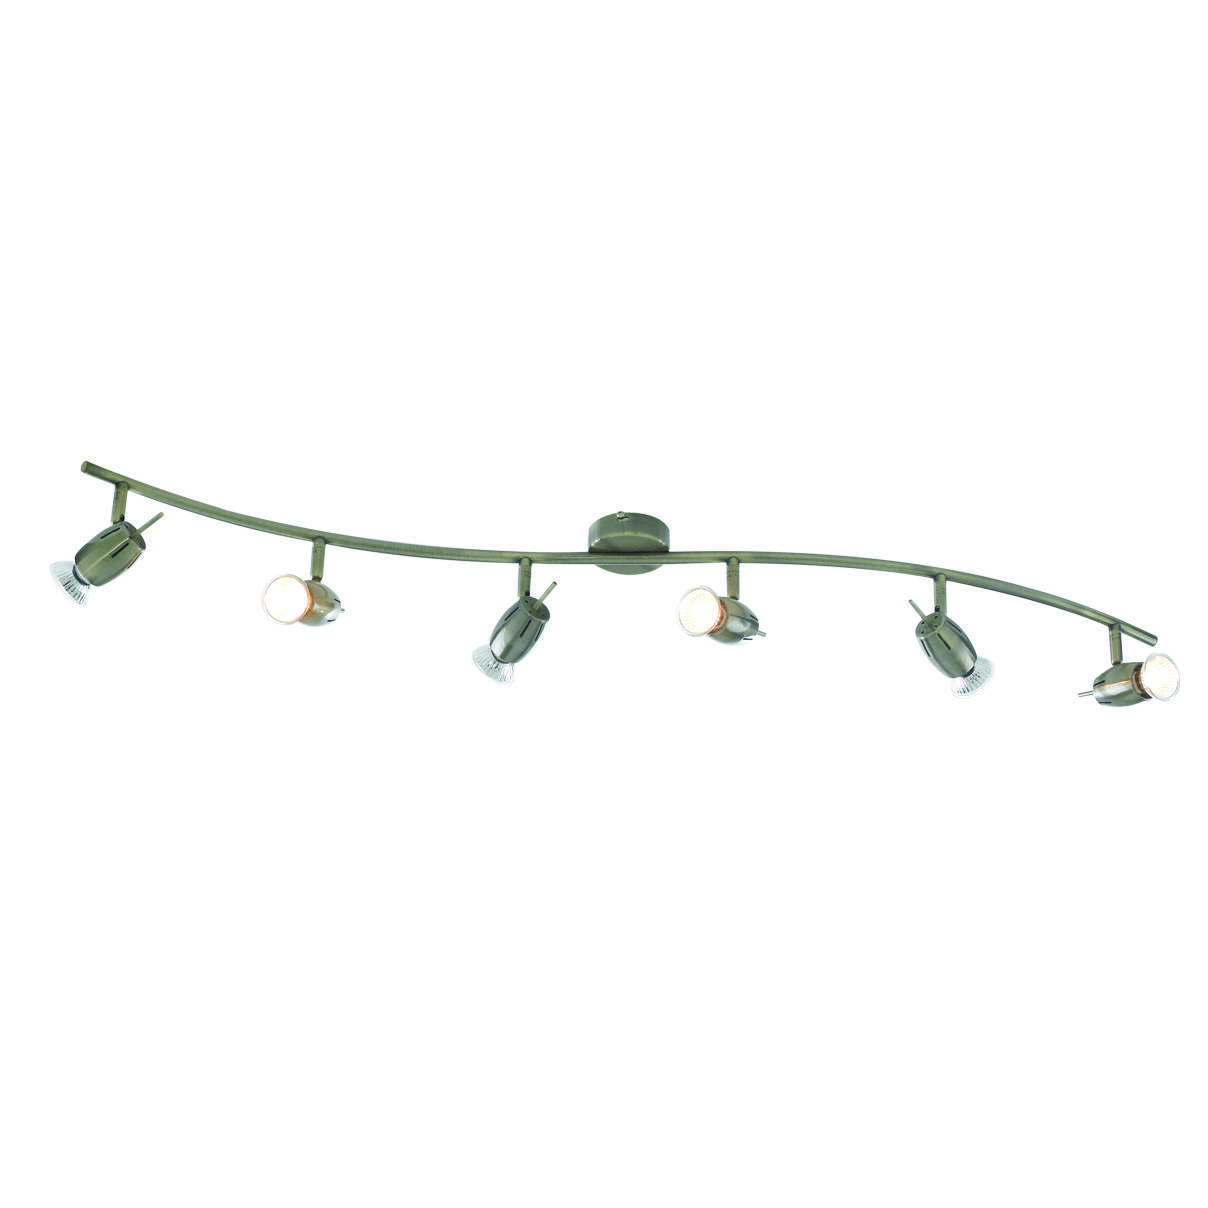 Frank Antique Brass 6 Light Spotlight Bar